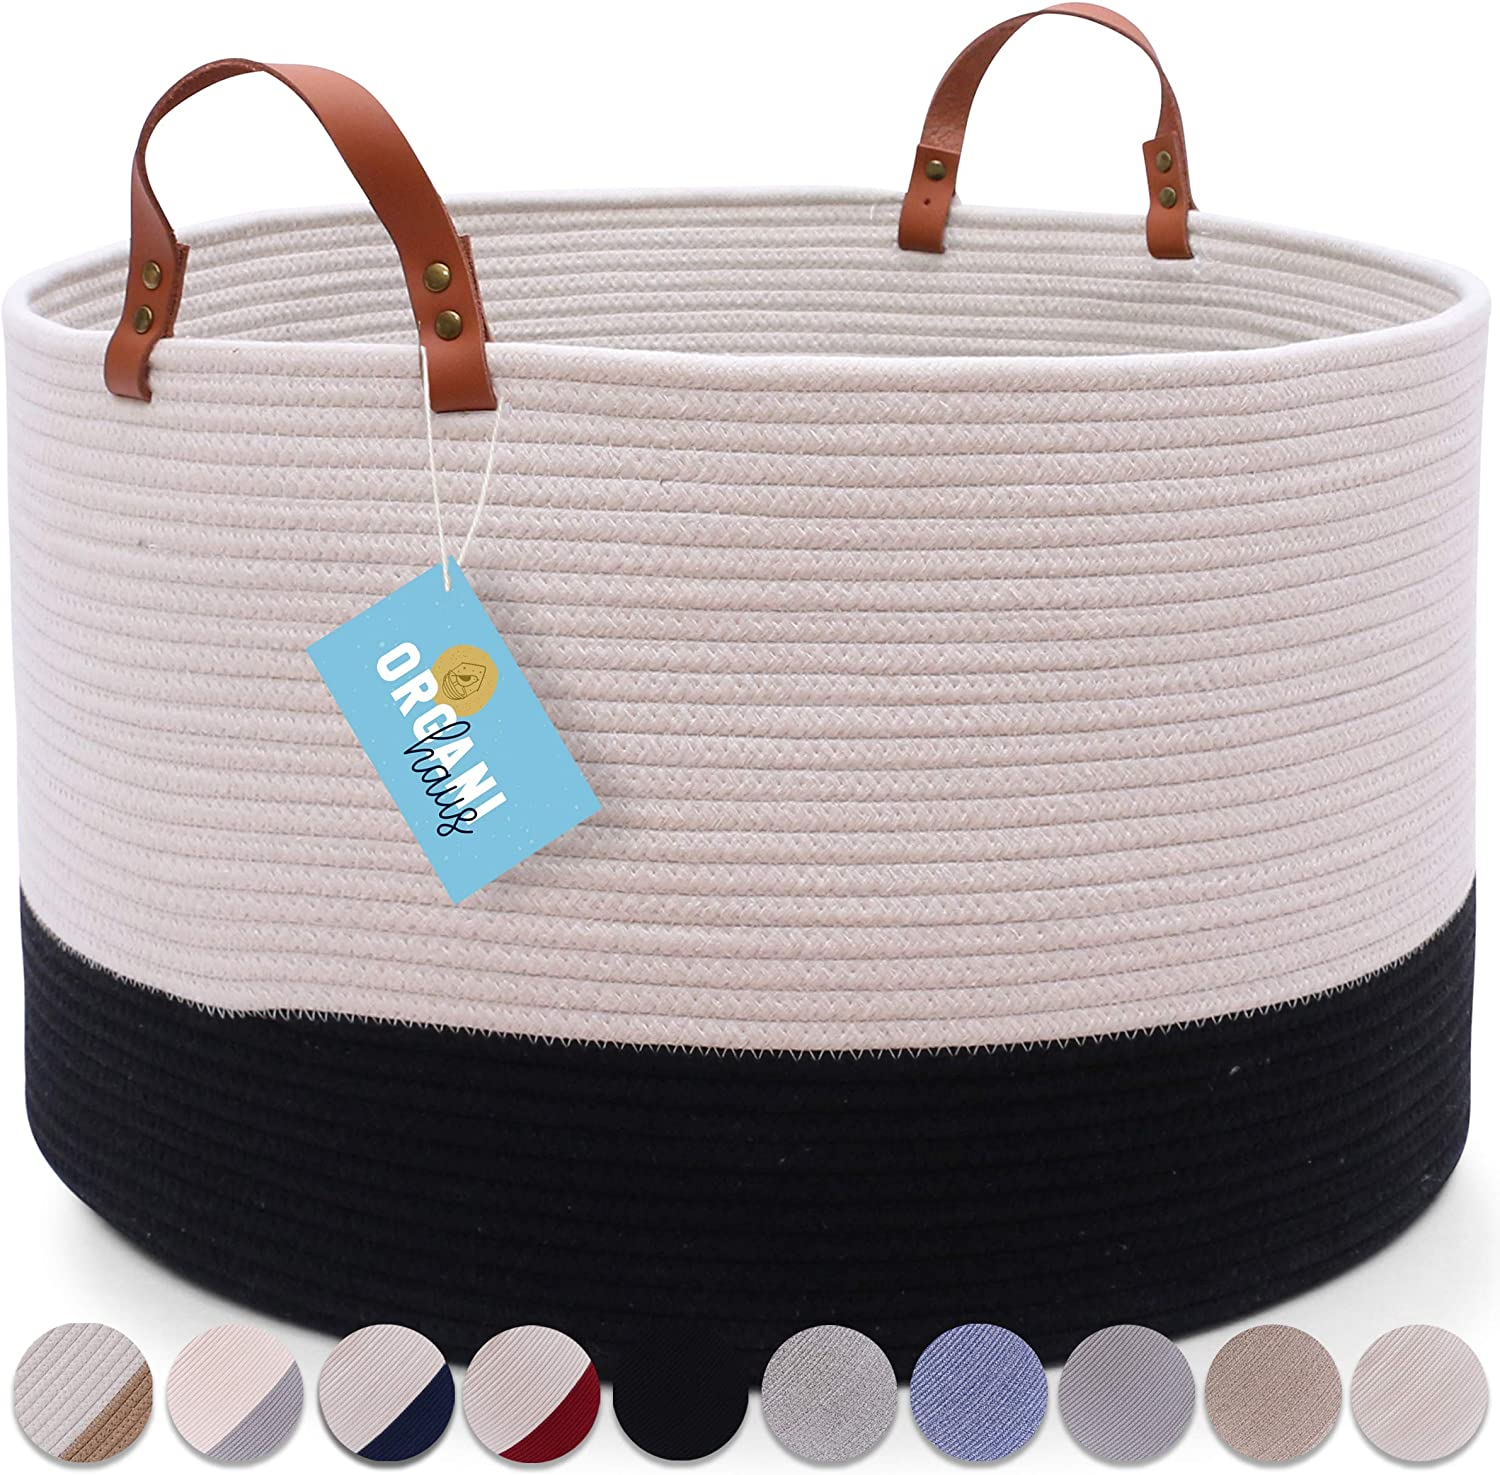 "OrganiHaus XXL Extra Large Cotton Rope Basket with Real Leather Handles | Wide 20""x13.3"" Coiled Rope Basket 